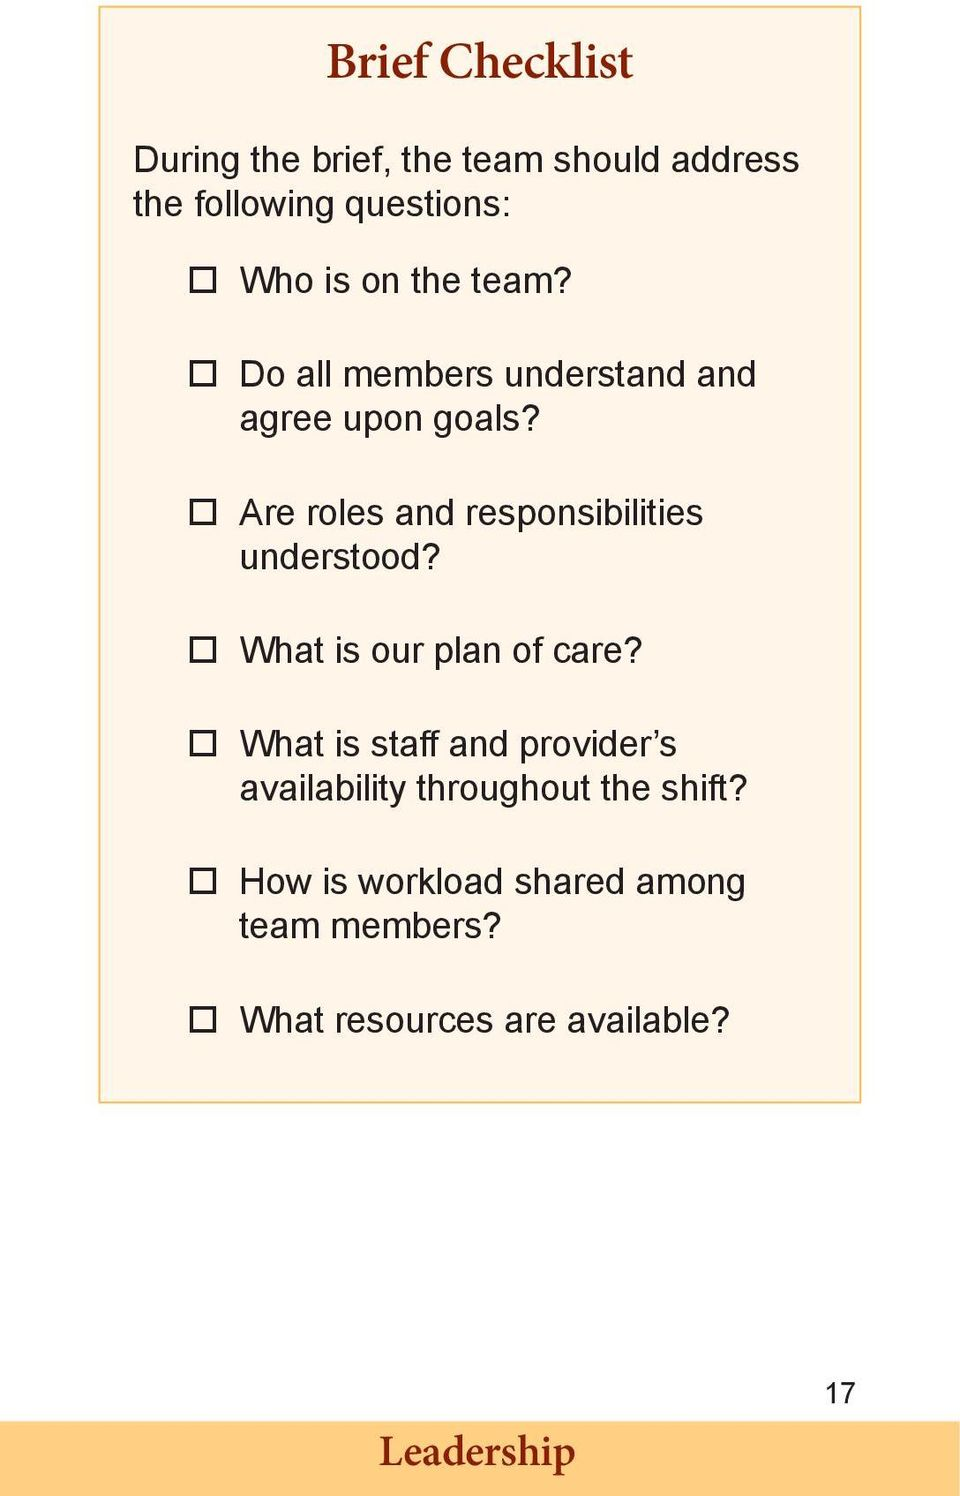 Are roles and responsibilities understood? What is our plan of care?